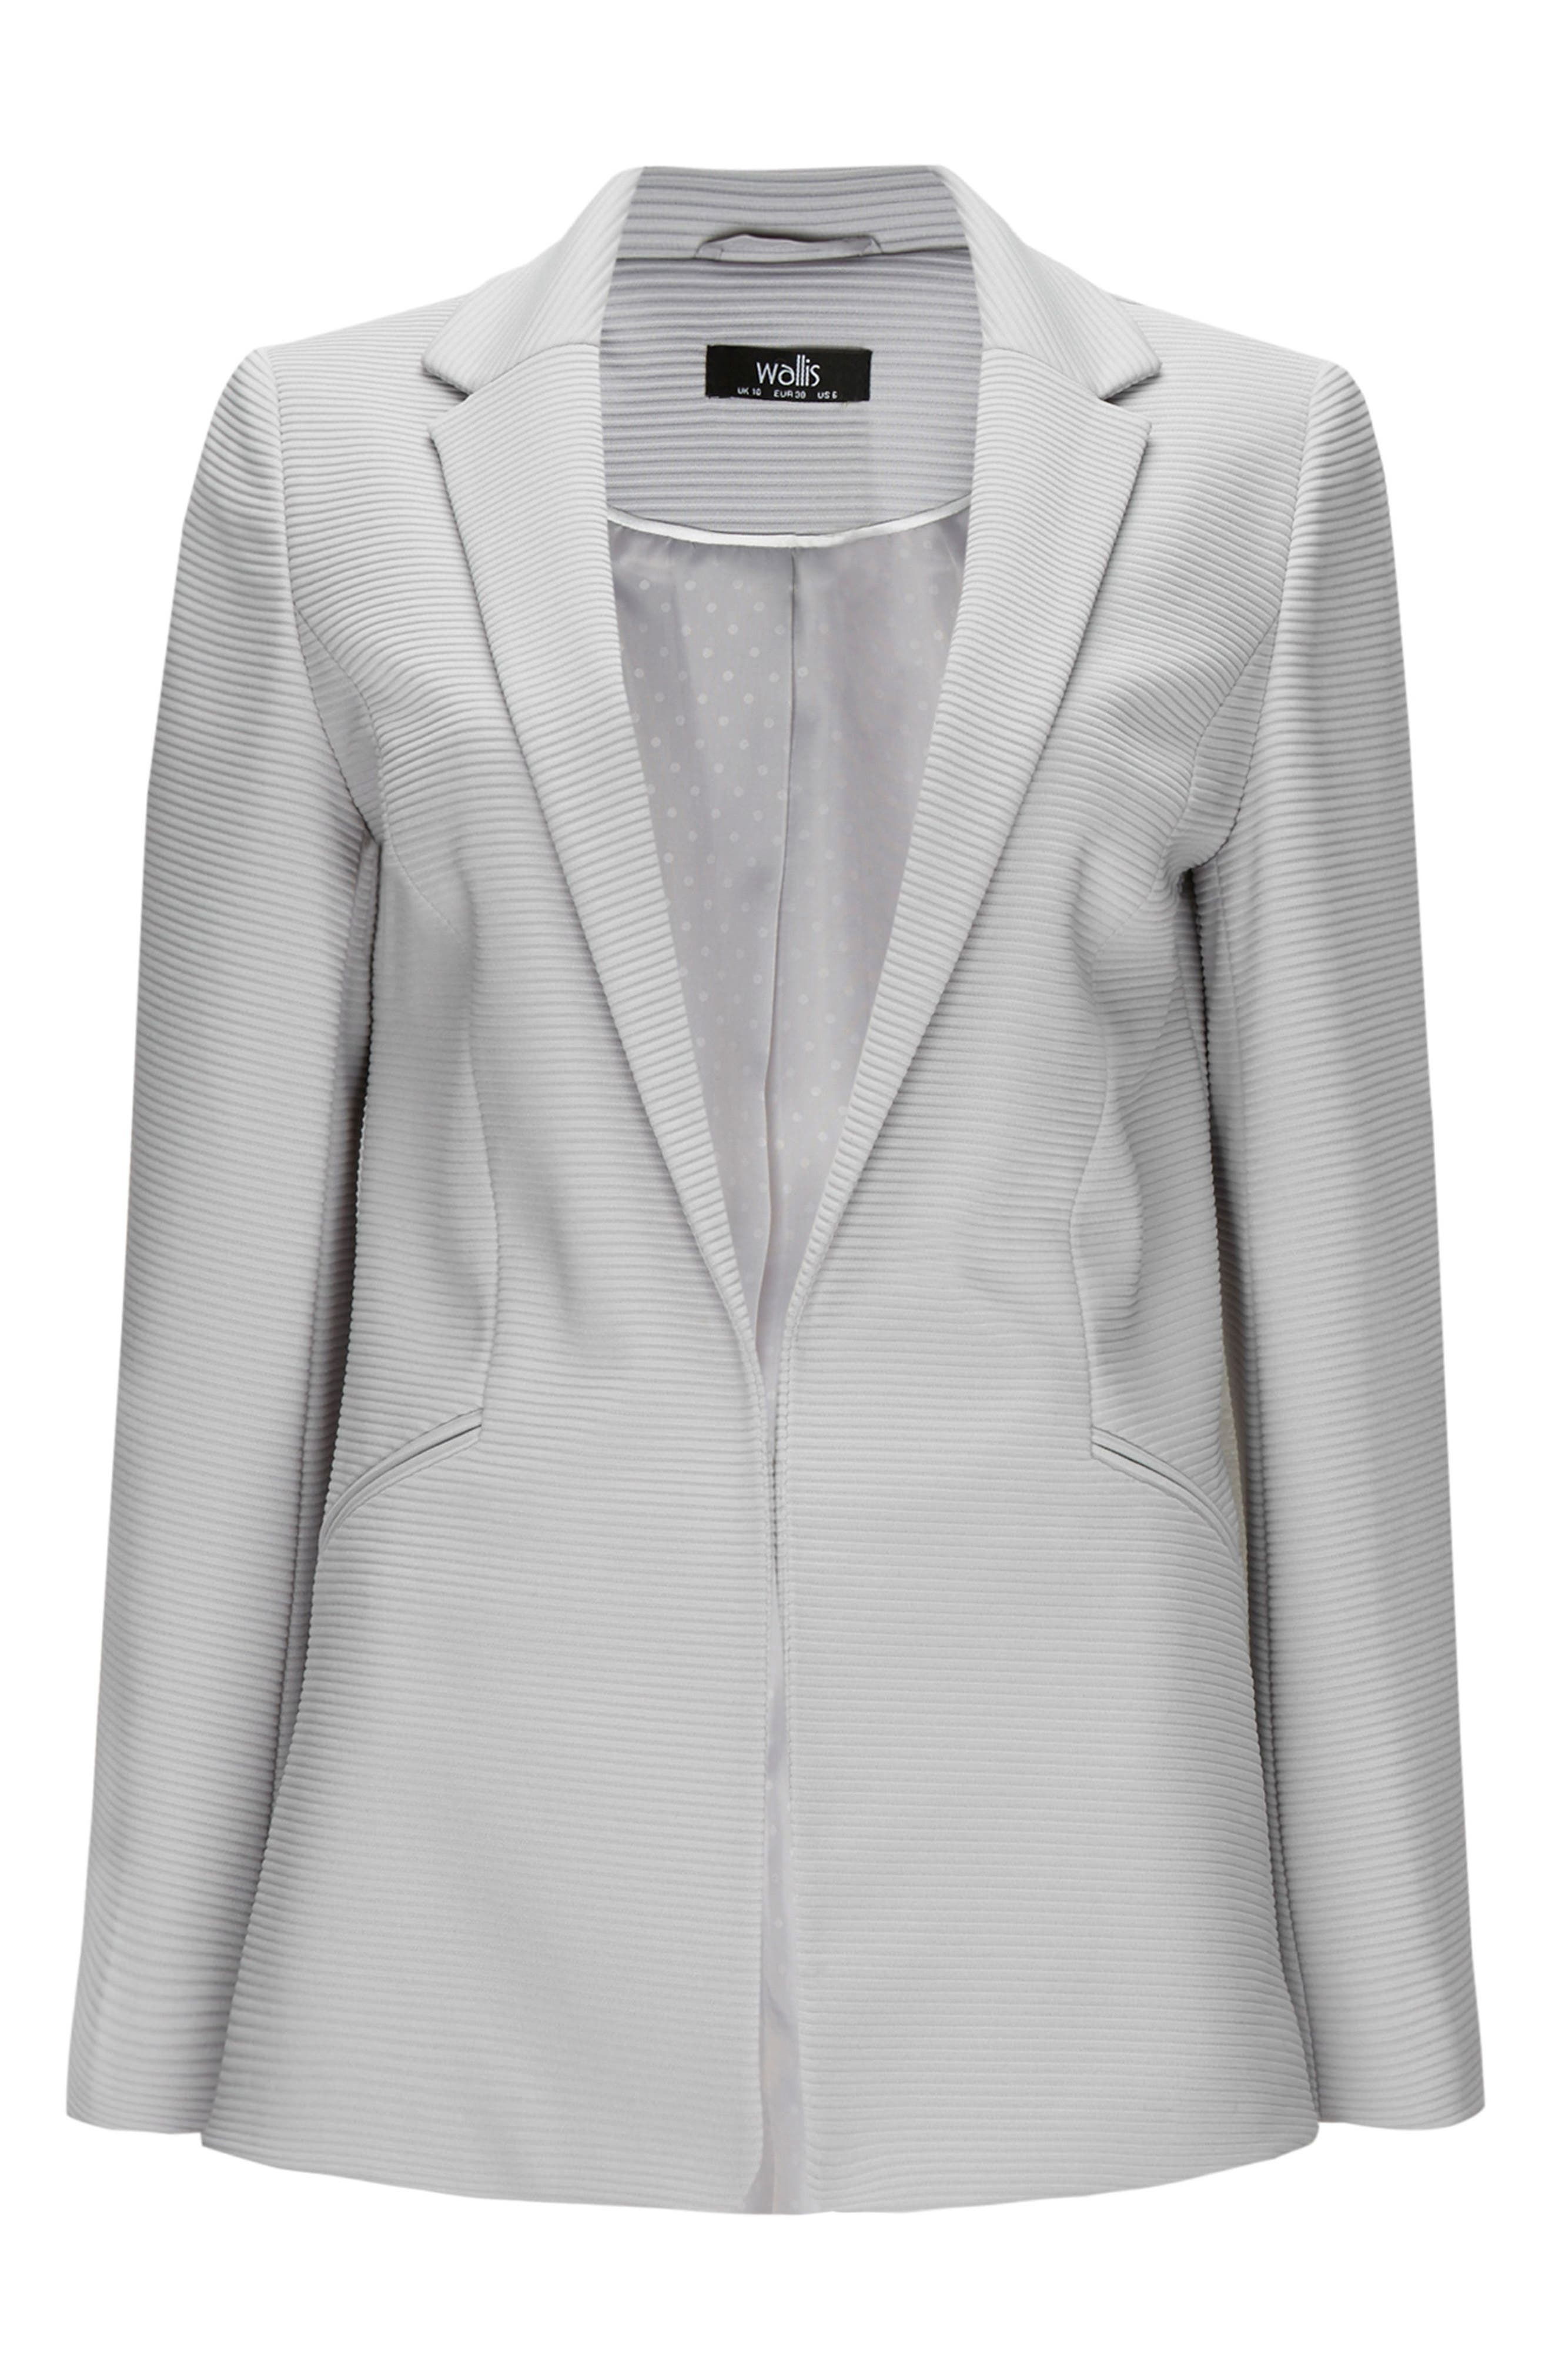 Ribbed Stretch Knit Blazer,                             Alternate thumbnail 5, color,                             020